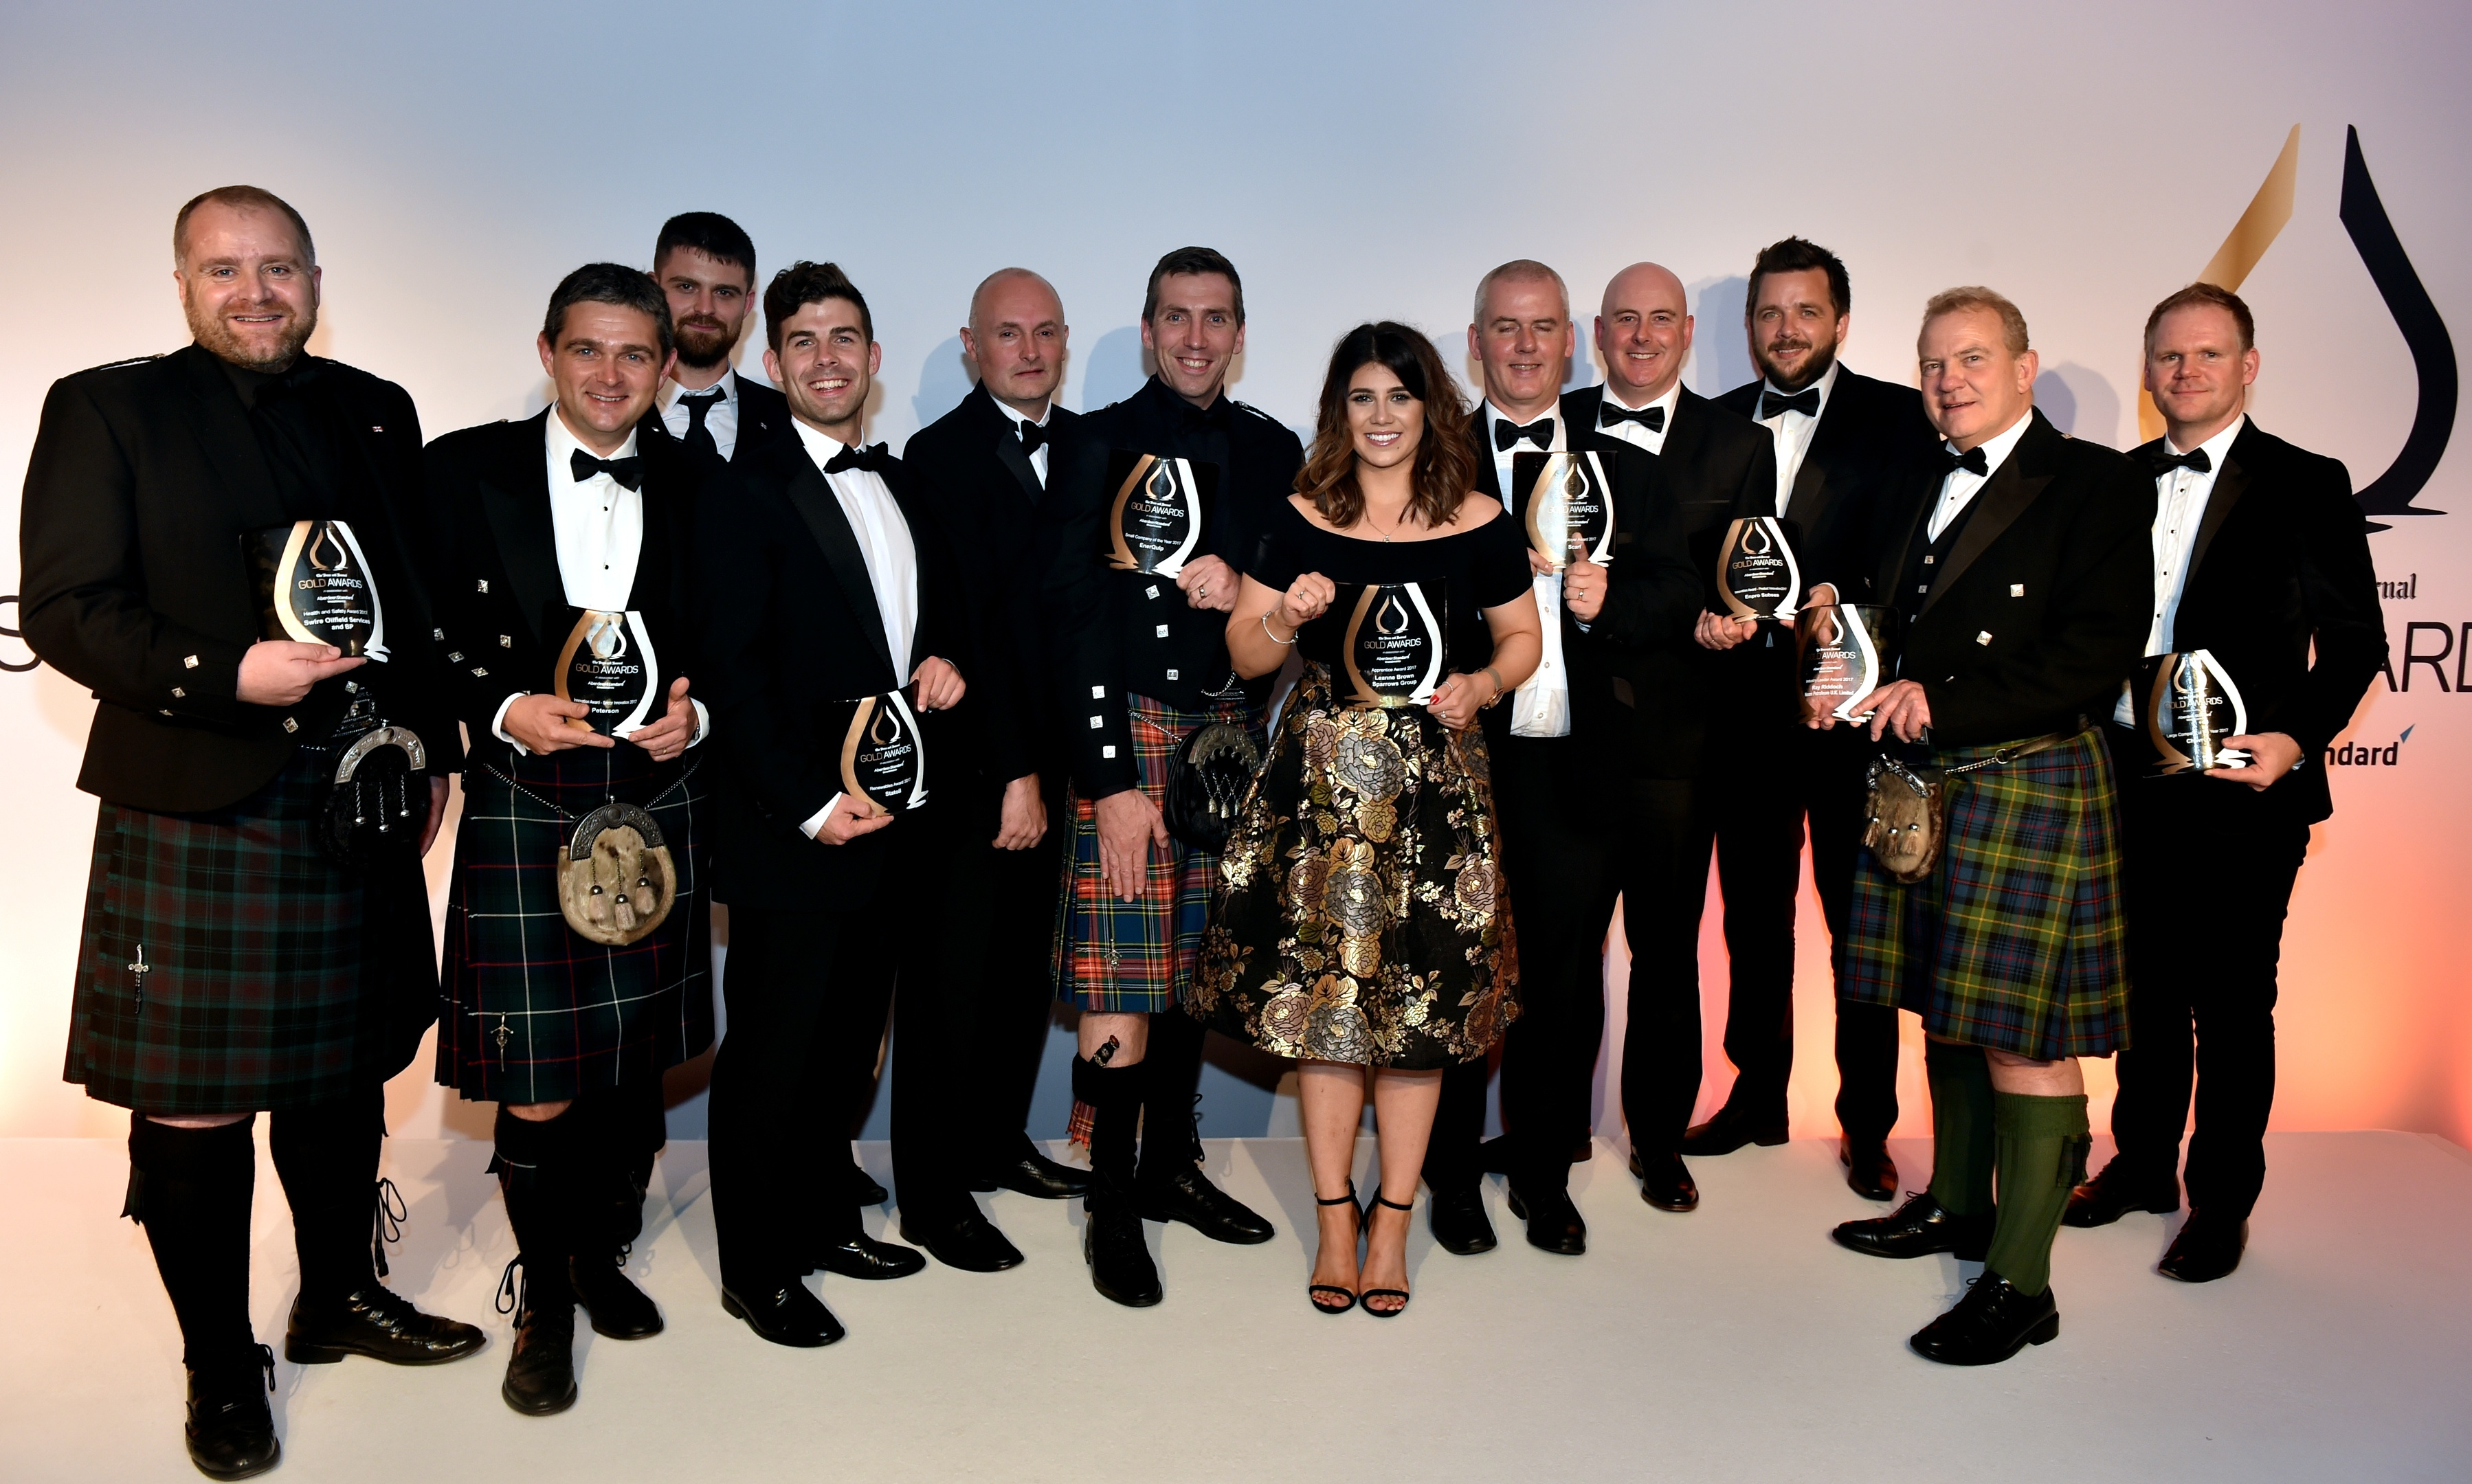 Gold awards held at the Marcliffe Hotel and Spa, Aberdeen. The Gold Award Winners. Picture by COLIN RENNIE September 8, 2017.